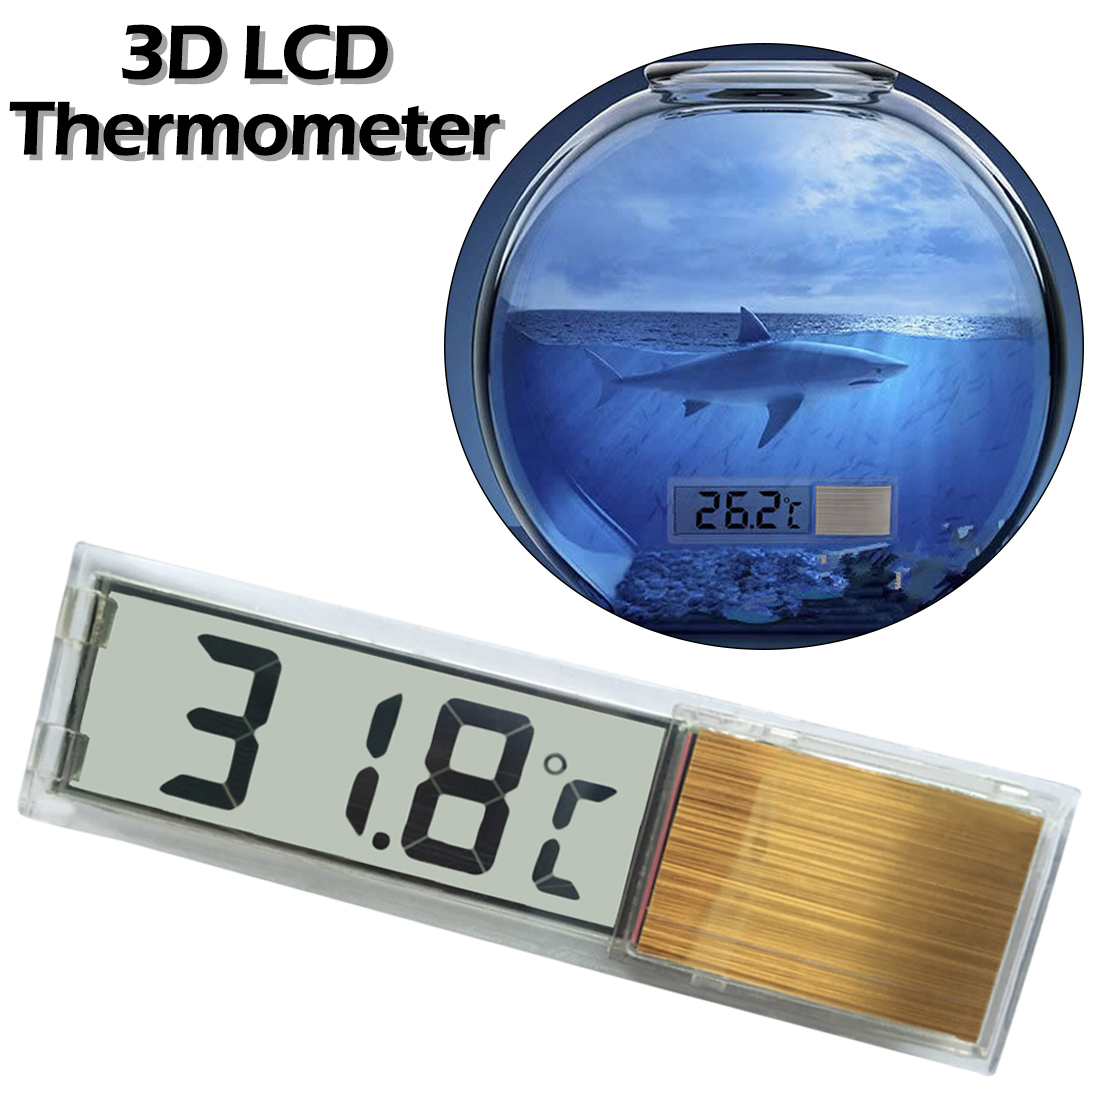 3D Crystal Digital LCD Digital Fish Tank Aquarium Thermometer Transparent Fish Tank Thermometer Fish Tank Aquarium Temp Meter